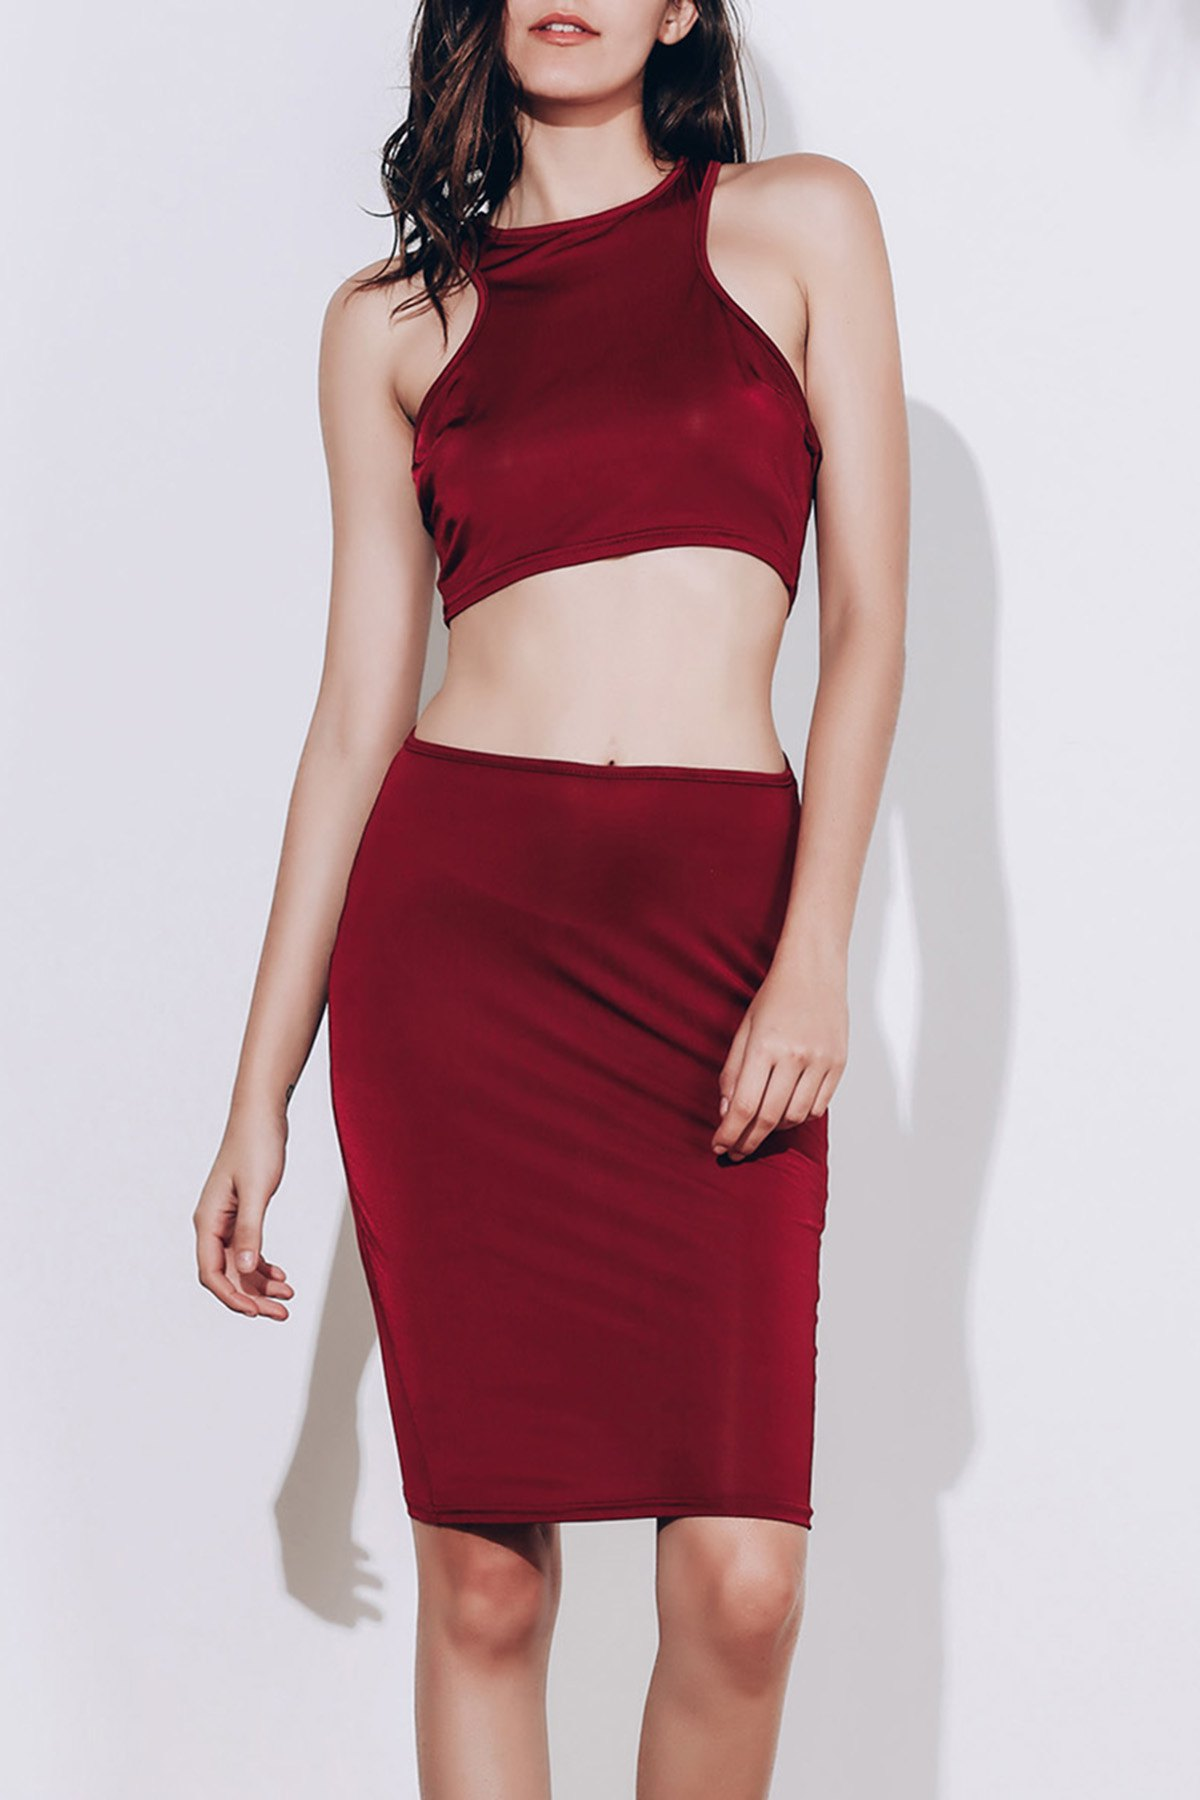 Alluring Sleeveless Round Neck Solid Color Crop Top + High-Waisted Skirt Women's Twinset alluring round neck sleeveless pure color crop top high waisted skirt twinset for women